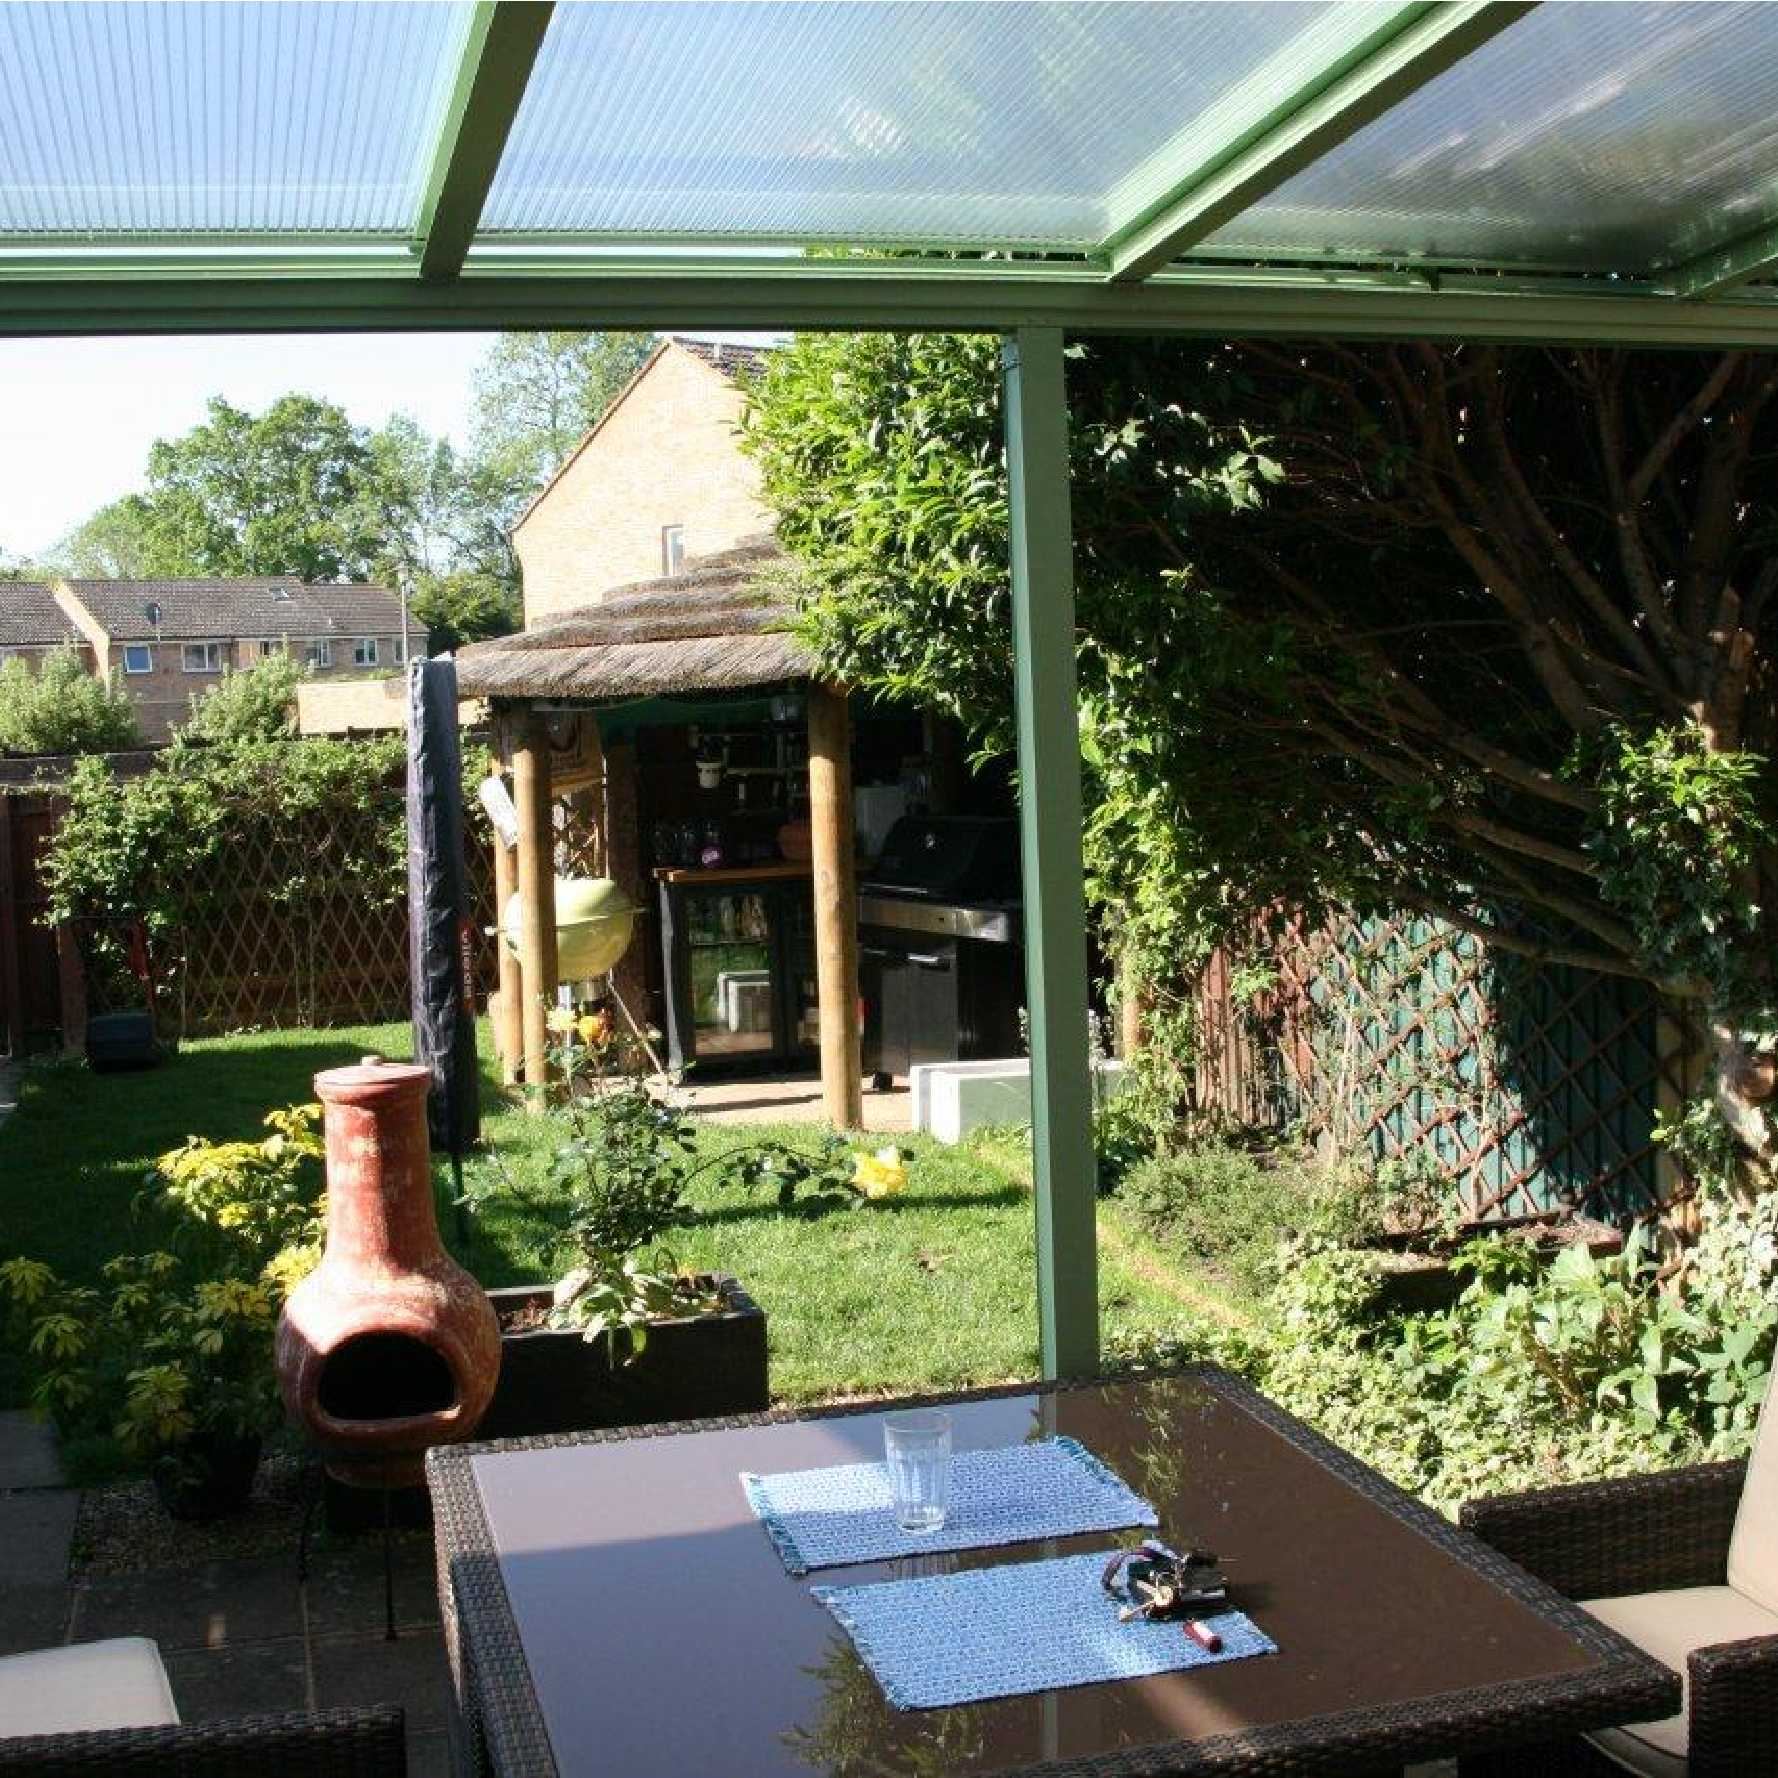 Affordable Omega Smart White Lean-To Canopy with 16mm Polycarbonate Glazing - 9.9m (W) x 3.5m (P), (5) Supporting Posts